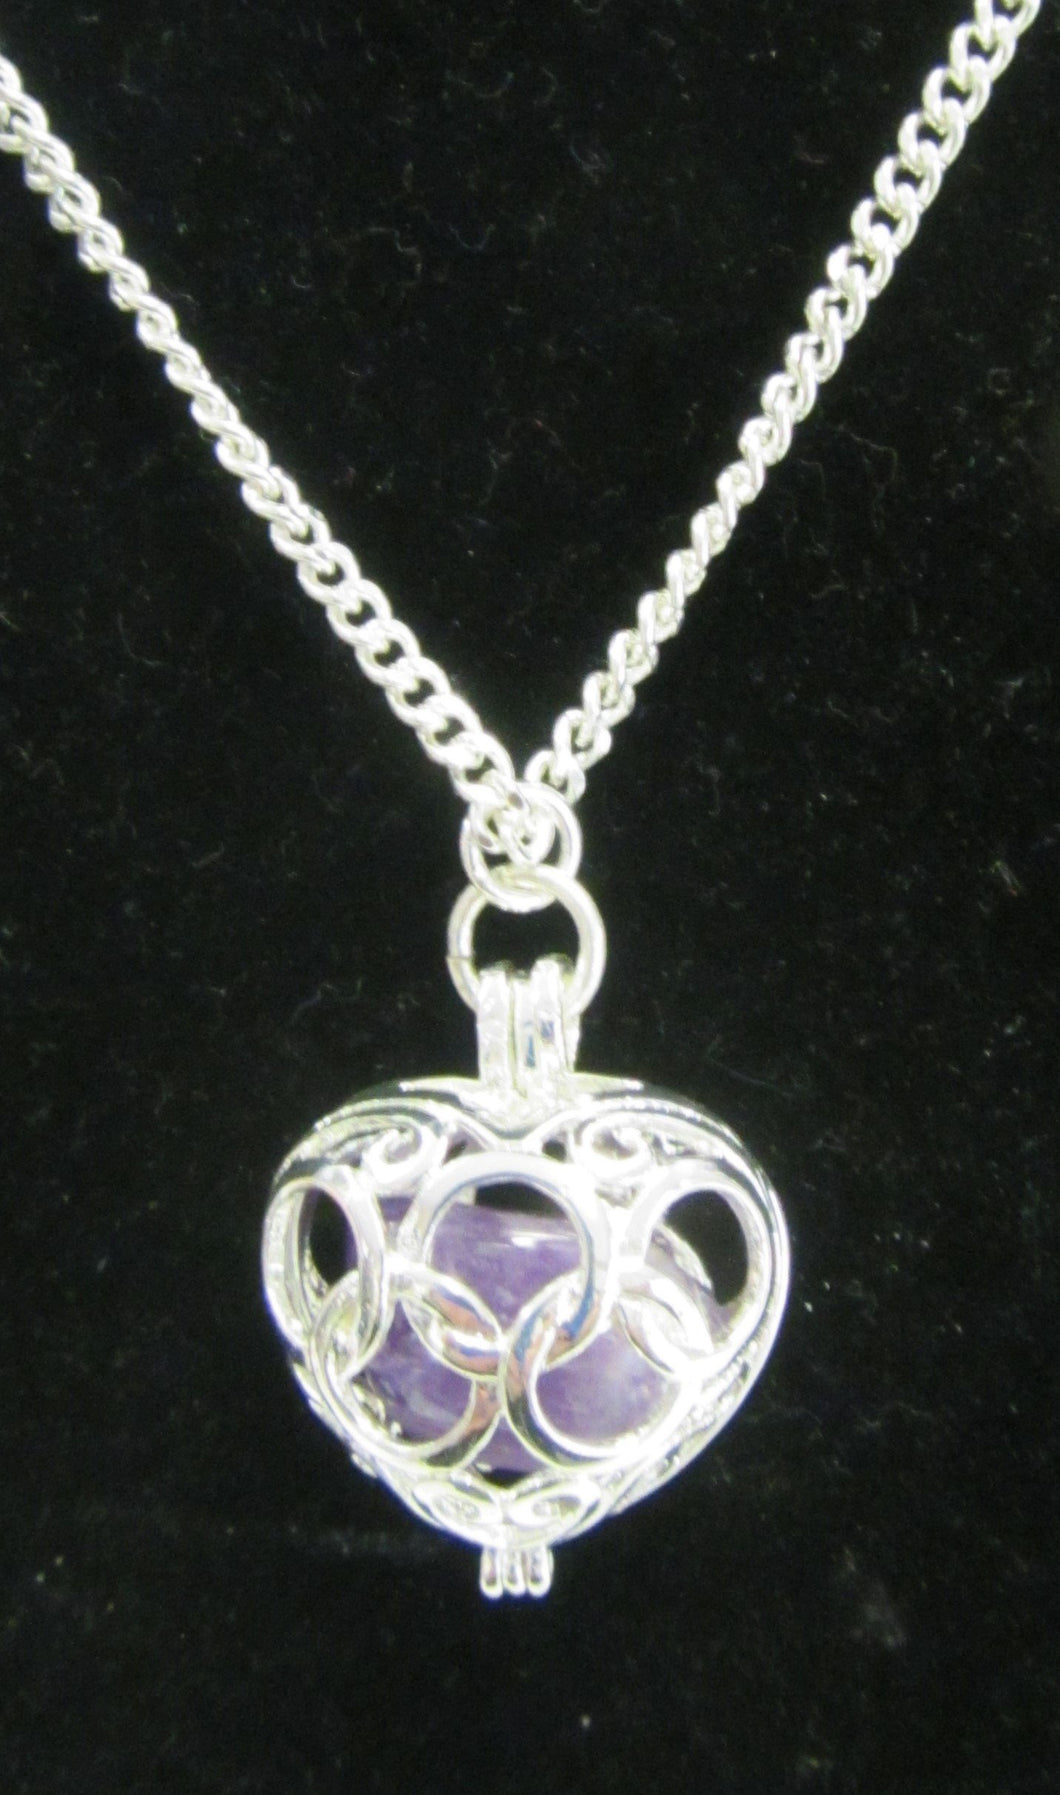 Beautiful handcrafted silver plated necklace with amethyst stone enclosed in the heart